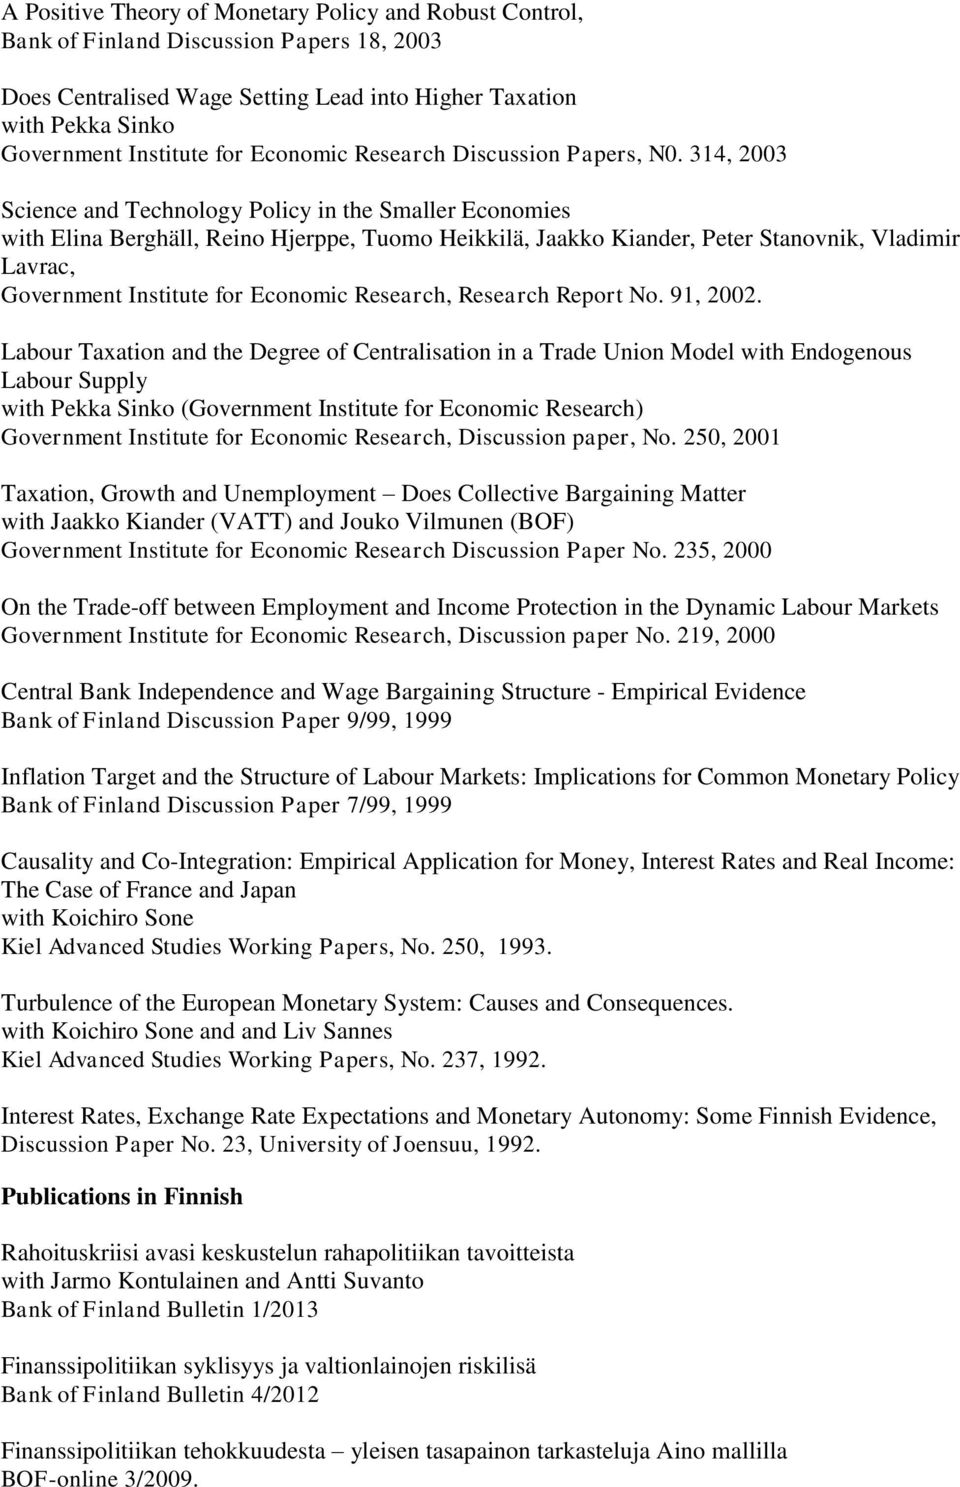 314, 2003 Science and Technology Policy in the Smaller Economies with Elina Berghäll, Reino Hjerppe, Tuomo Heikkilä, Jaakko Kiander, Peter Stanovnik, Vladimir Lavrac, Government Institute for